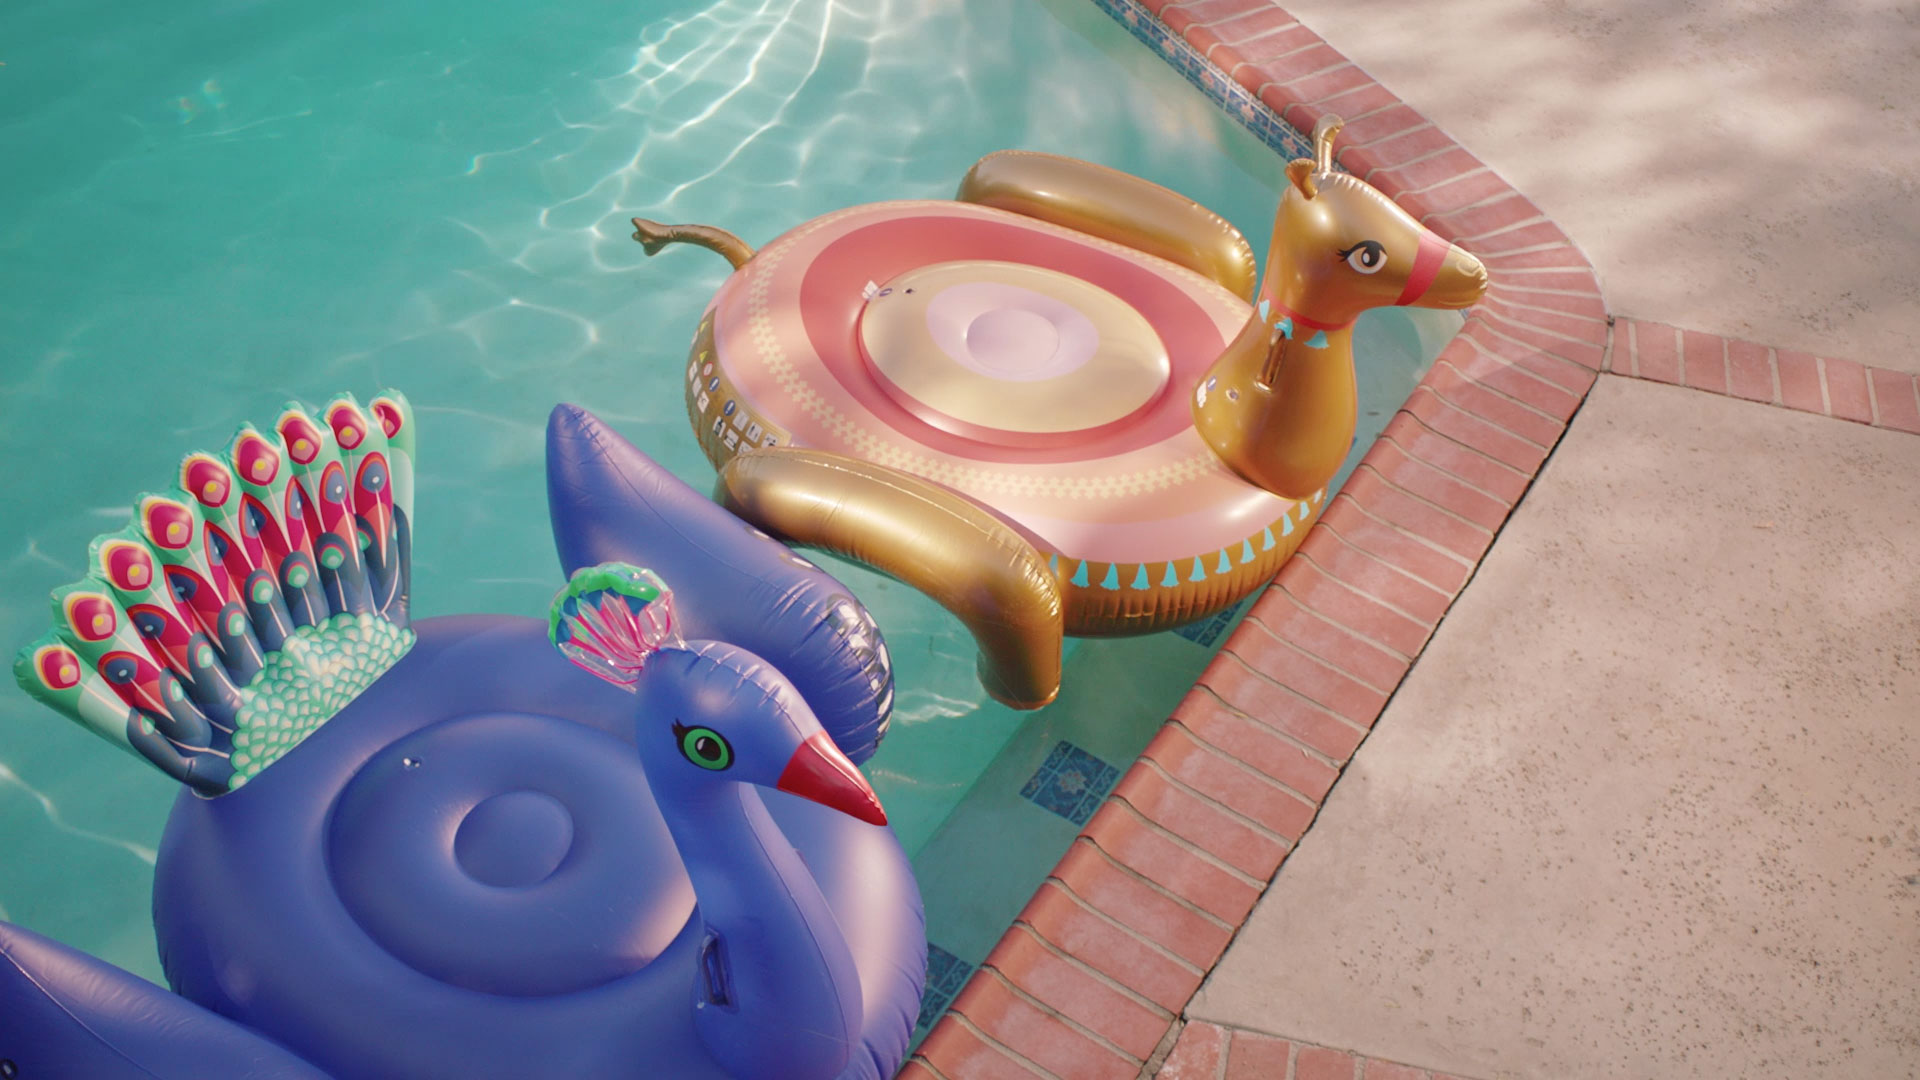 Orkin Presents Unexpected Testimonials in Wry New Ads   Muse by Clio